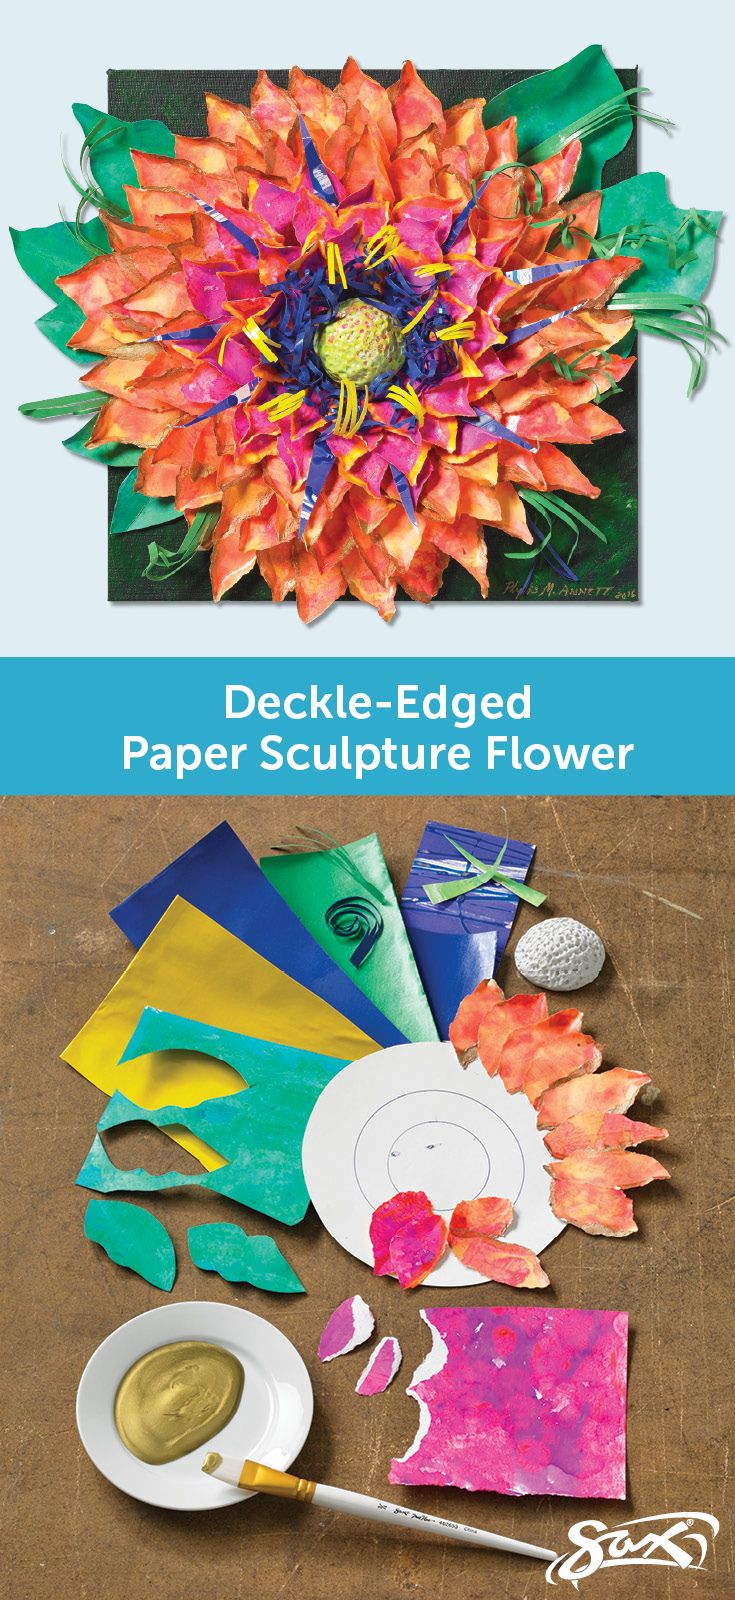 Using basic paper sculpture techniques, you, too, can create your own deckle-edged paper sculpture flower. Art lesson plan includes objectives, directions, materials list, grade levels and correlations to National Core Arts Standards.Created by our Sax Art Consultants.